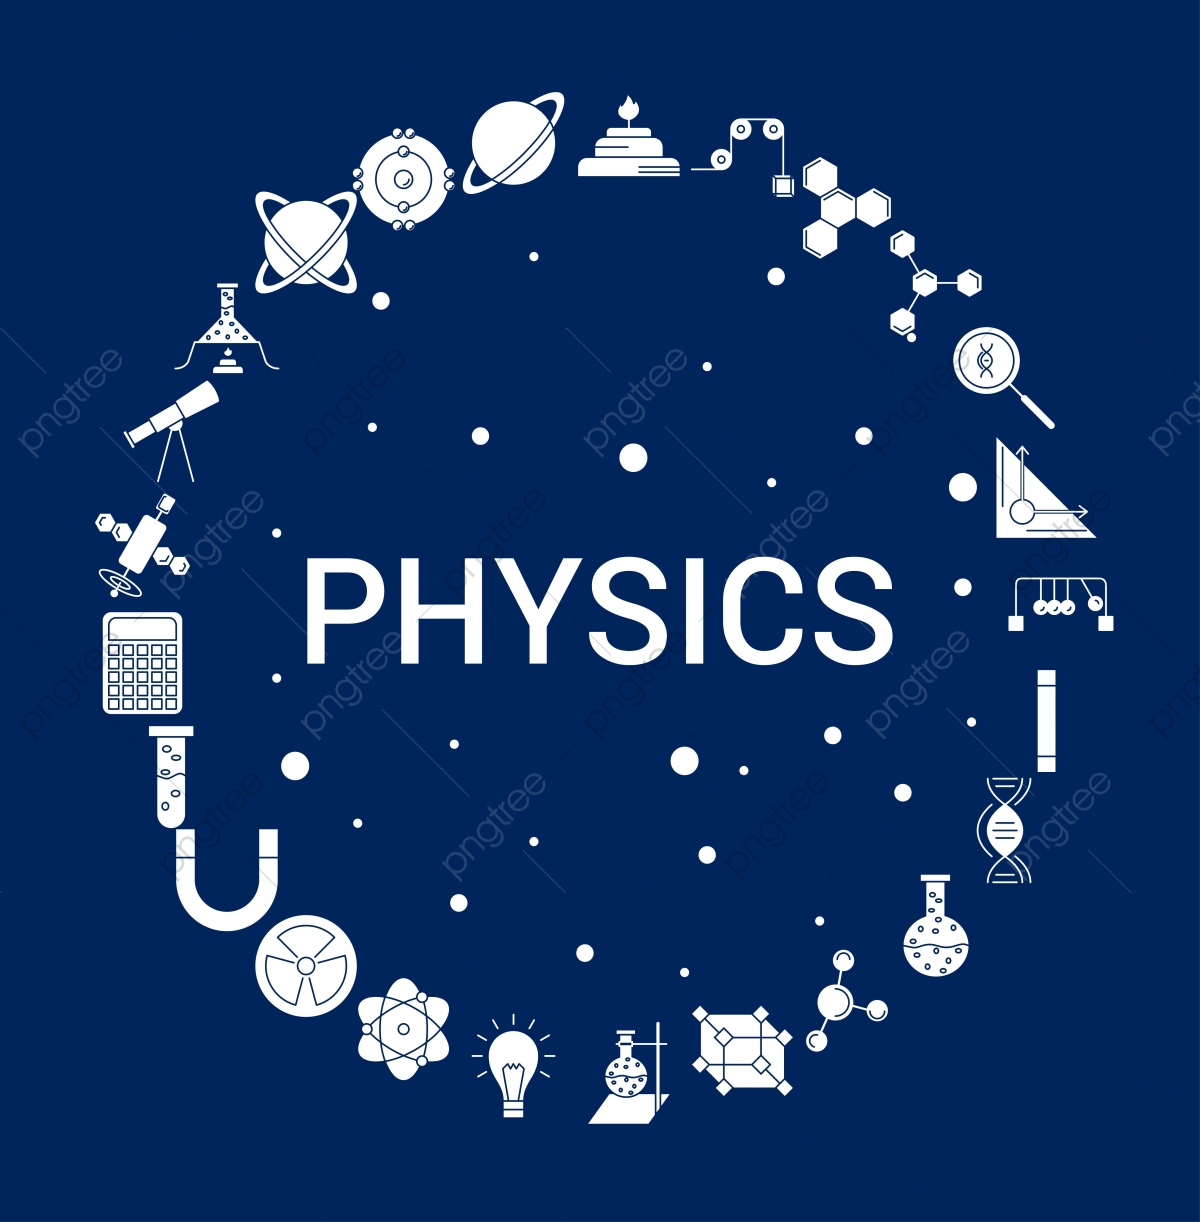 Creative Physics Icon Background, Atom, Biology, Book PNG and Vector.